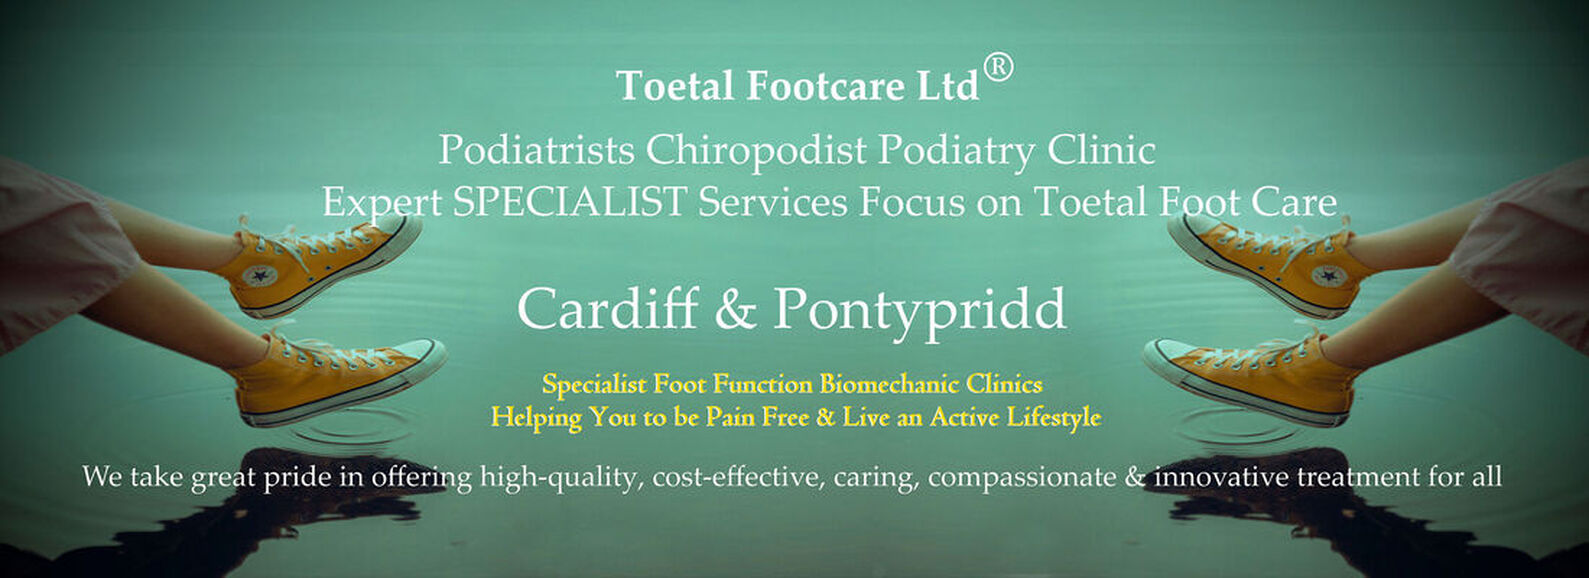 Podiatrists / Chiropodists in south Wales | North Cardiff, Whitchurch, Cyncoed, Lisvane, Llanishen, Penylan, Canton, Pontcanna